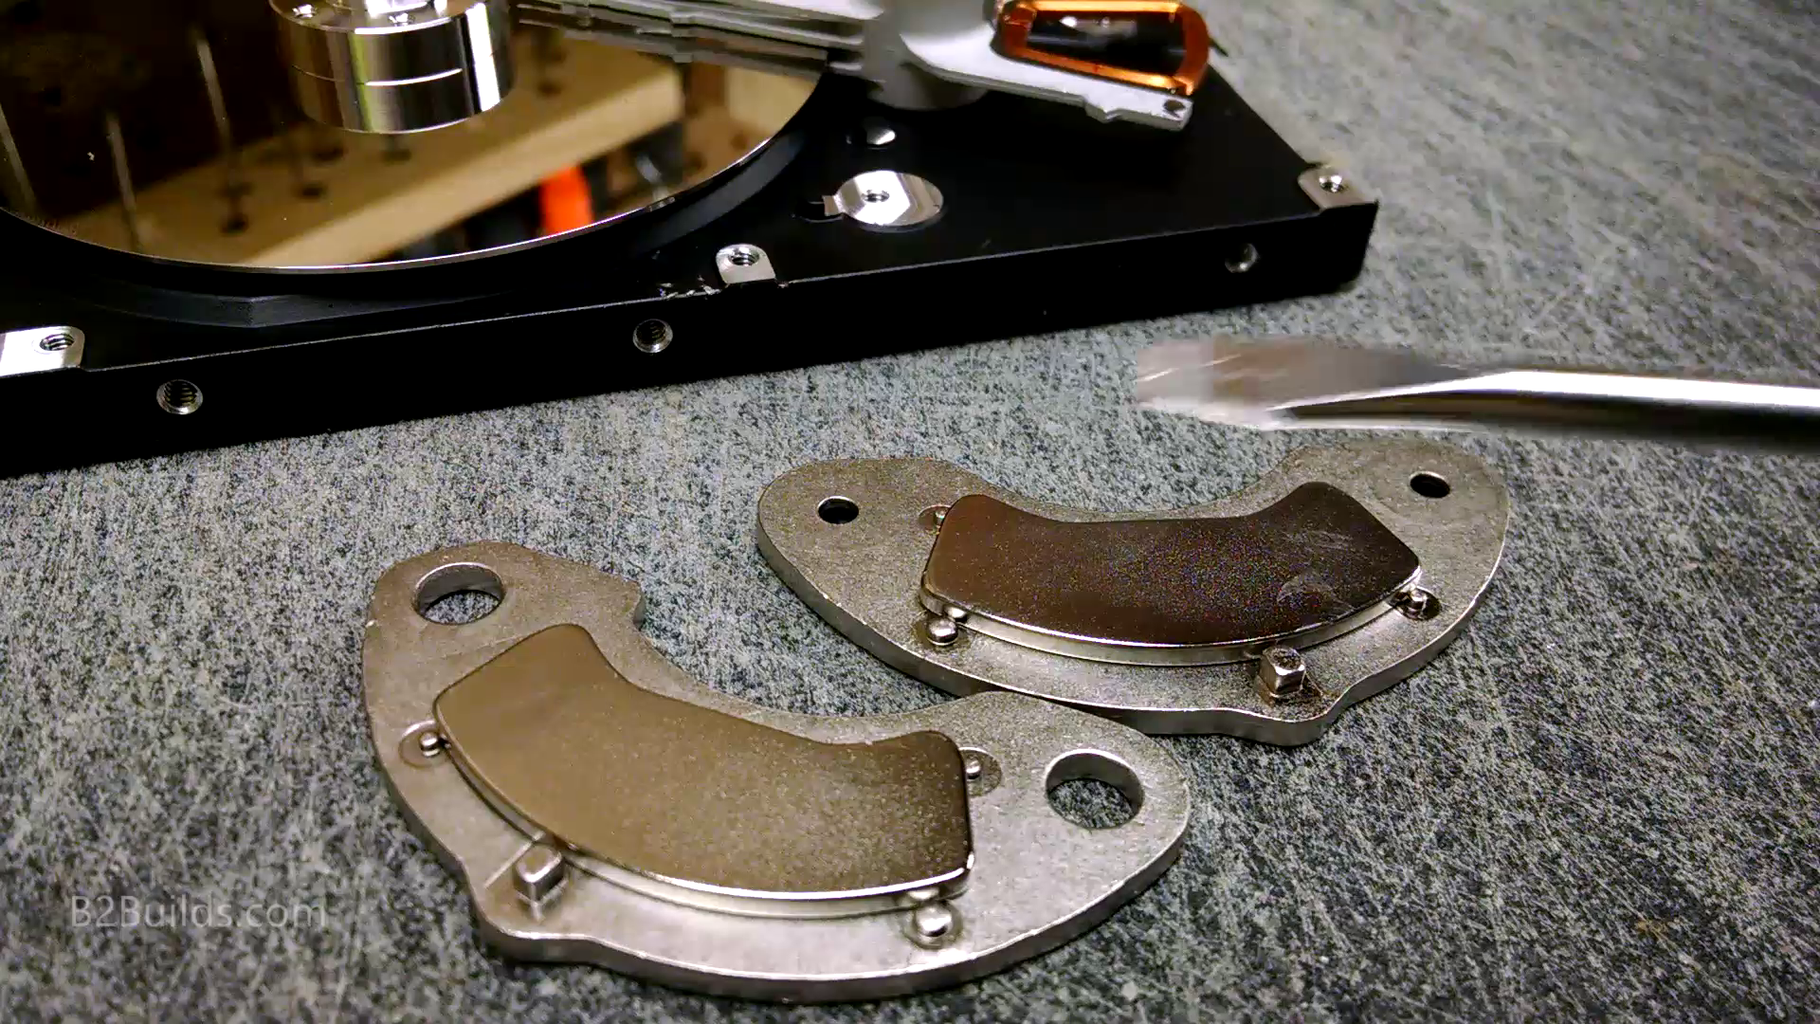 Gathering Hard Drive Magnets and Aluminum